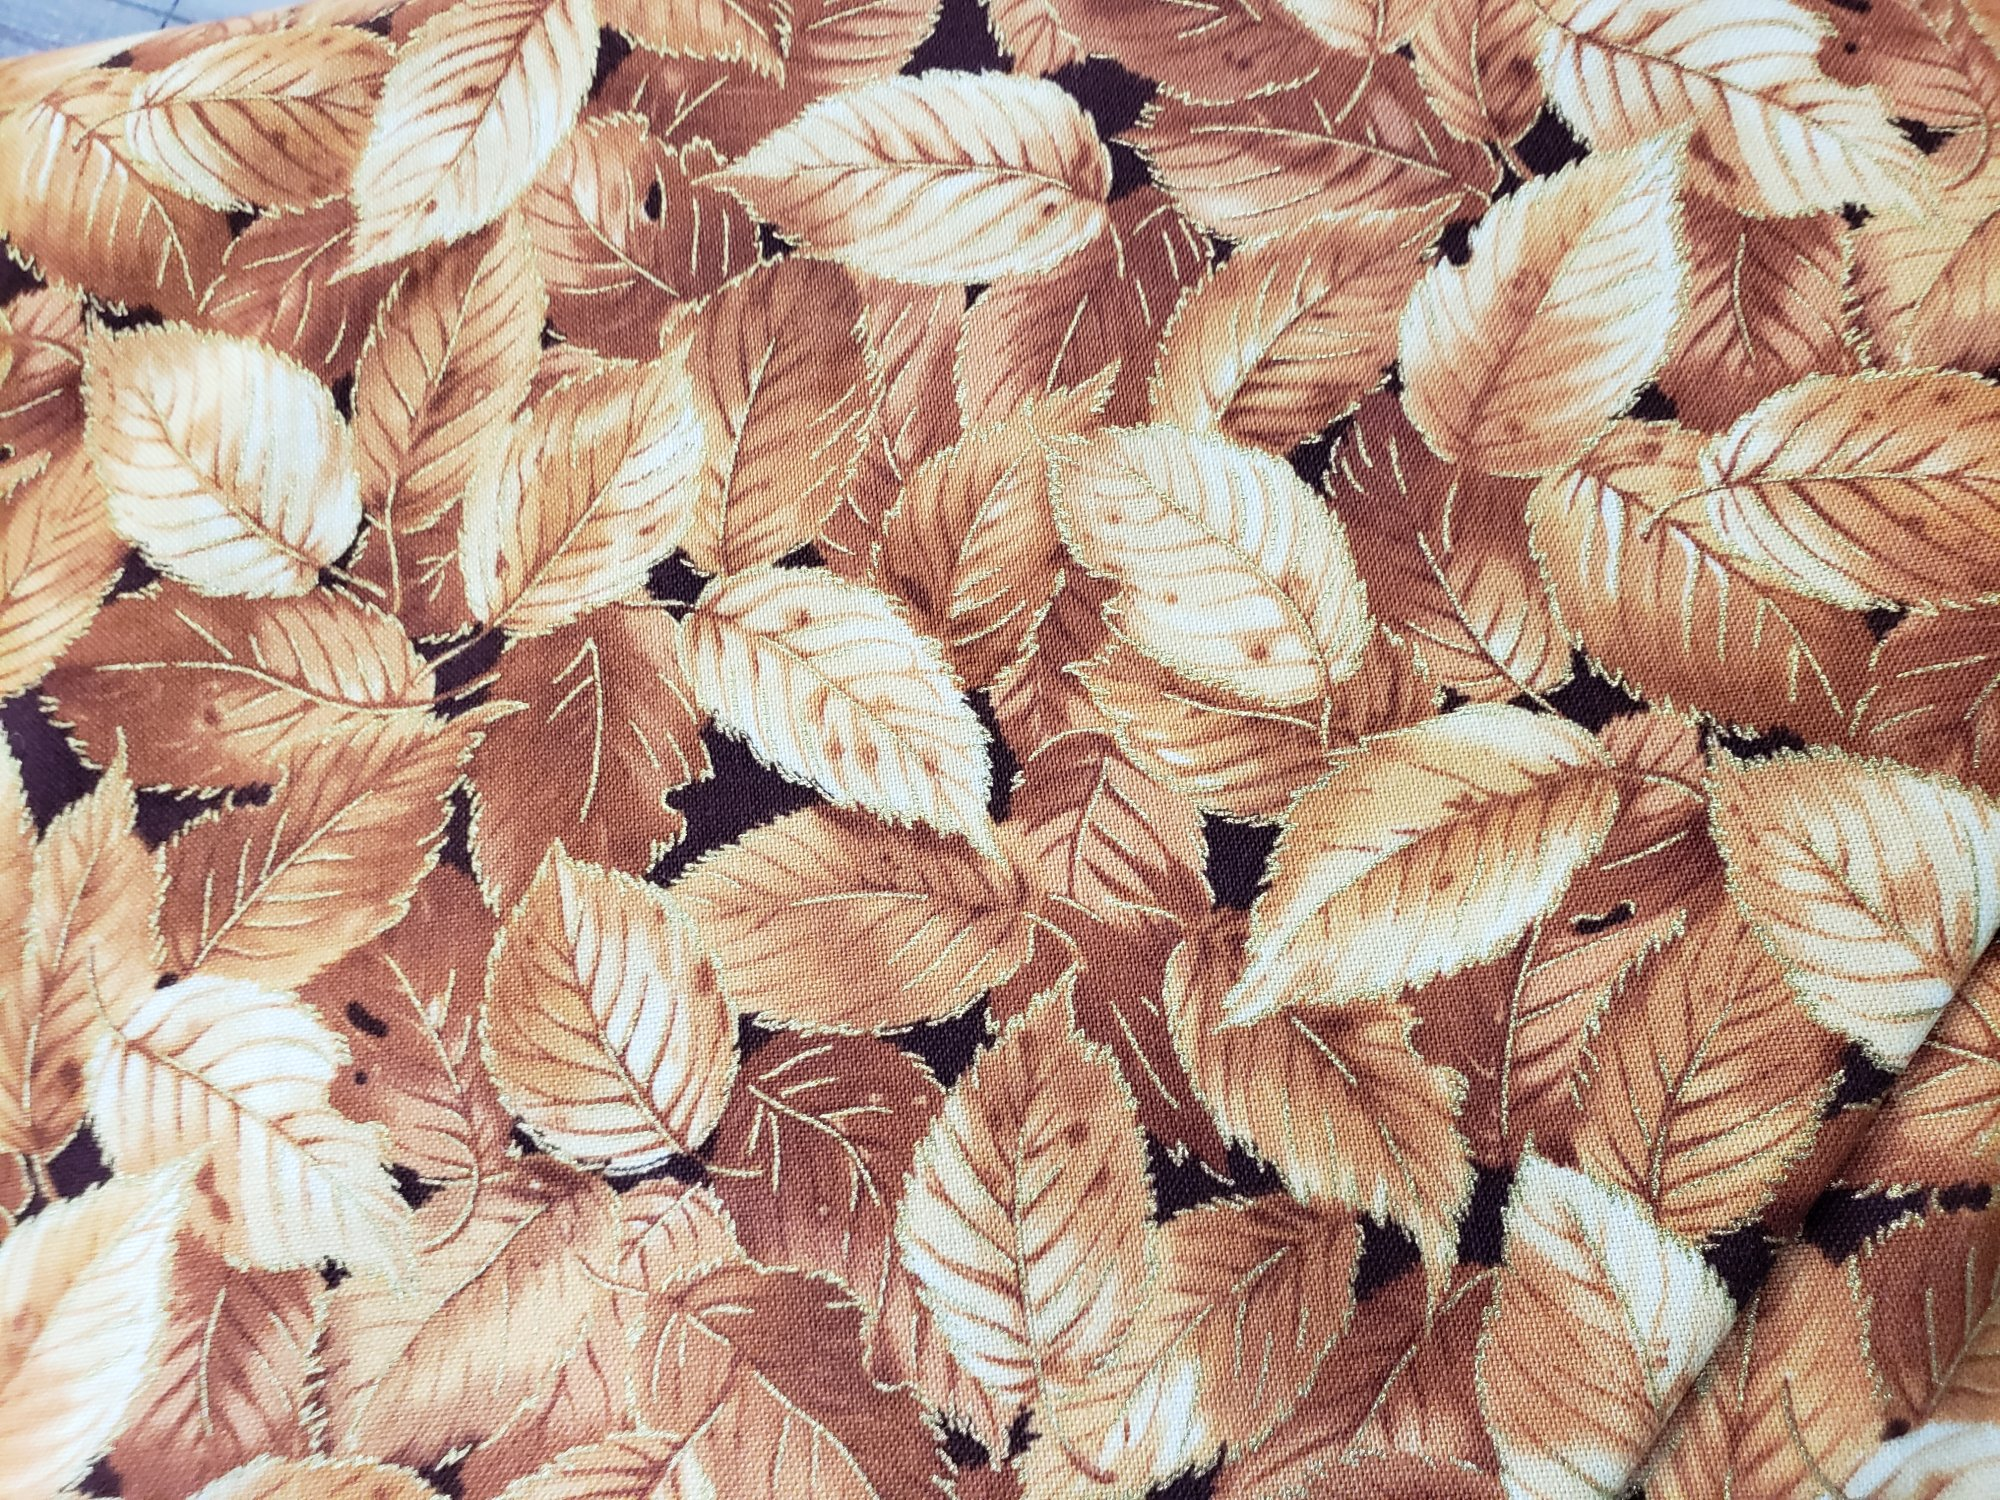 Fabri-Quilt Fall Spectular Gold Elem. Leaves